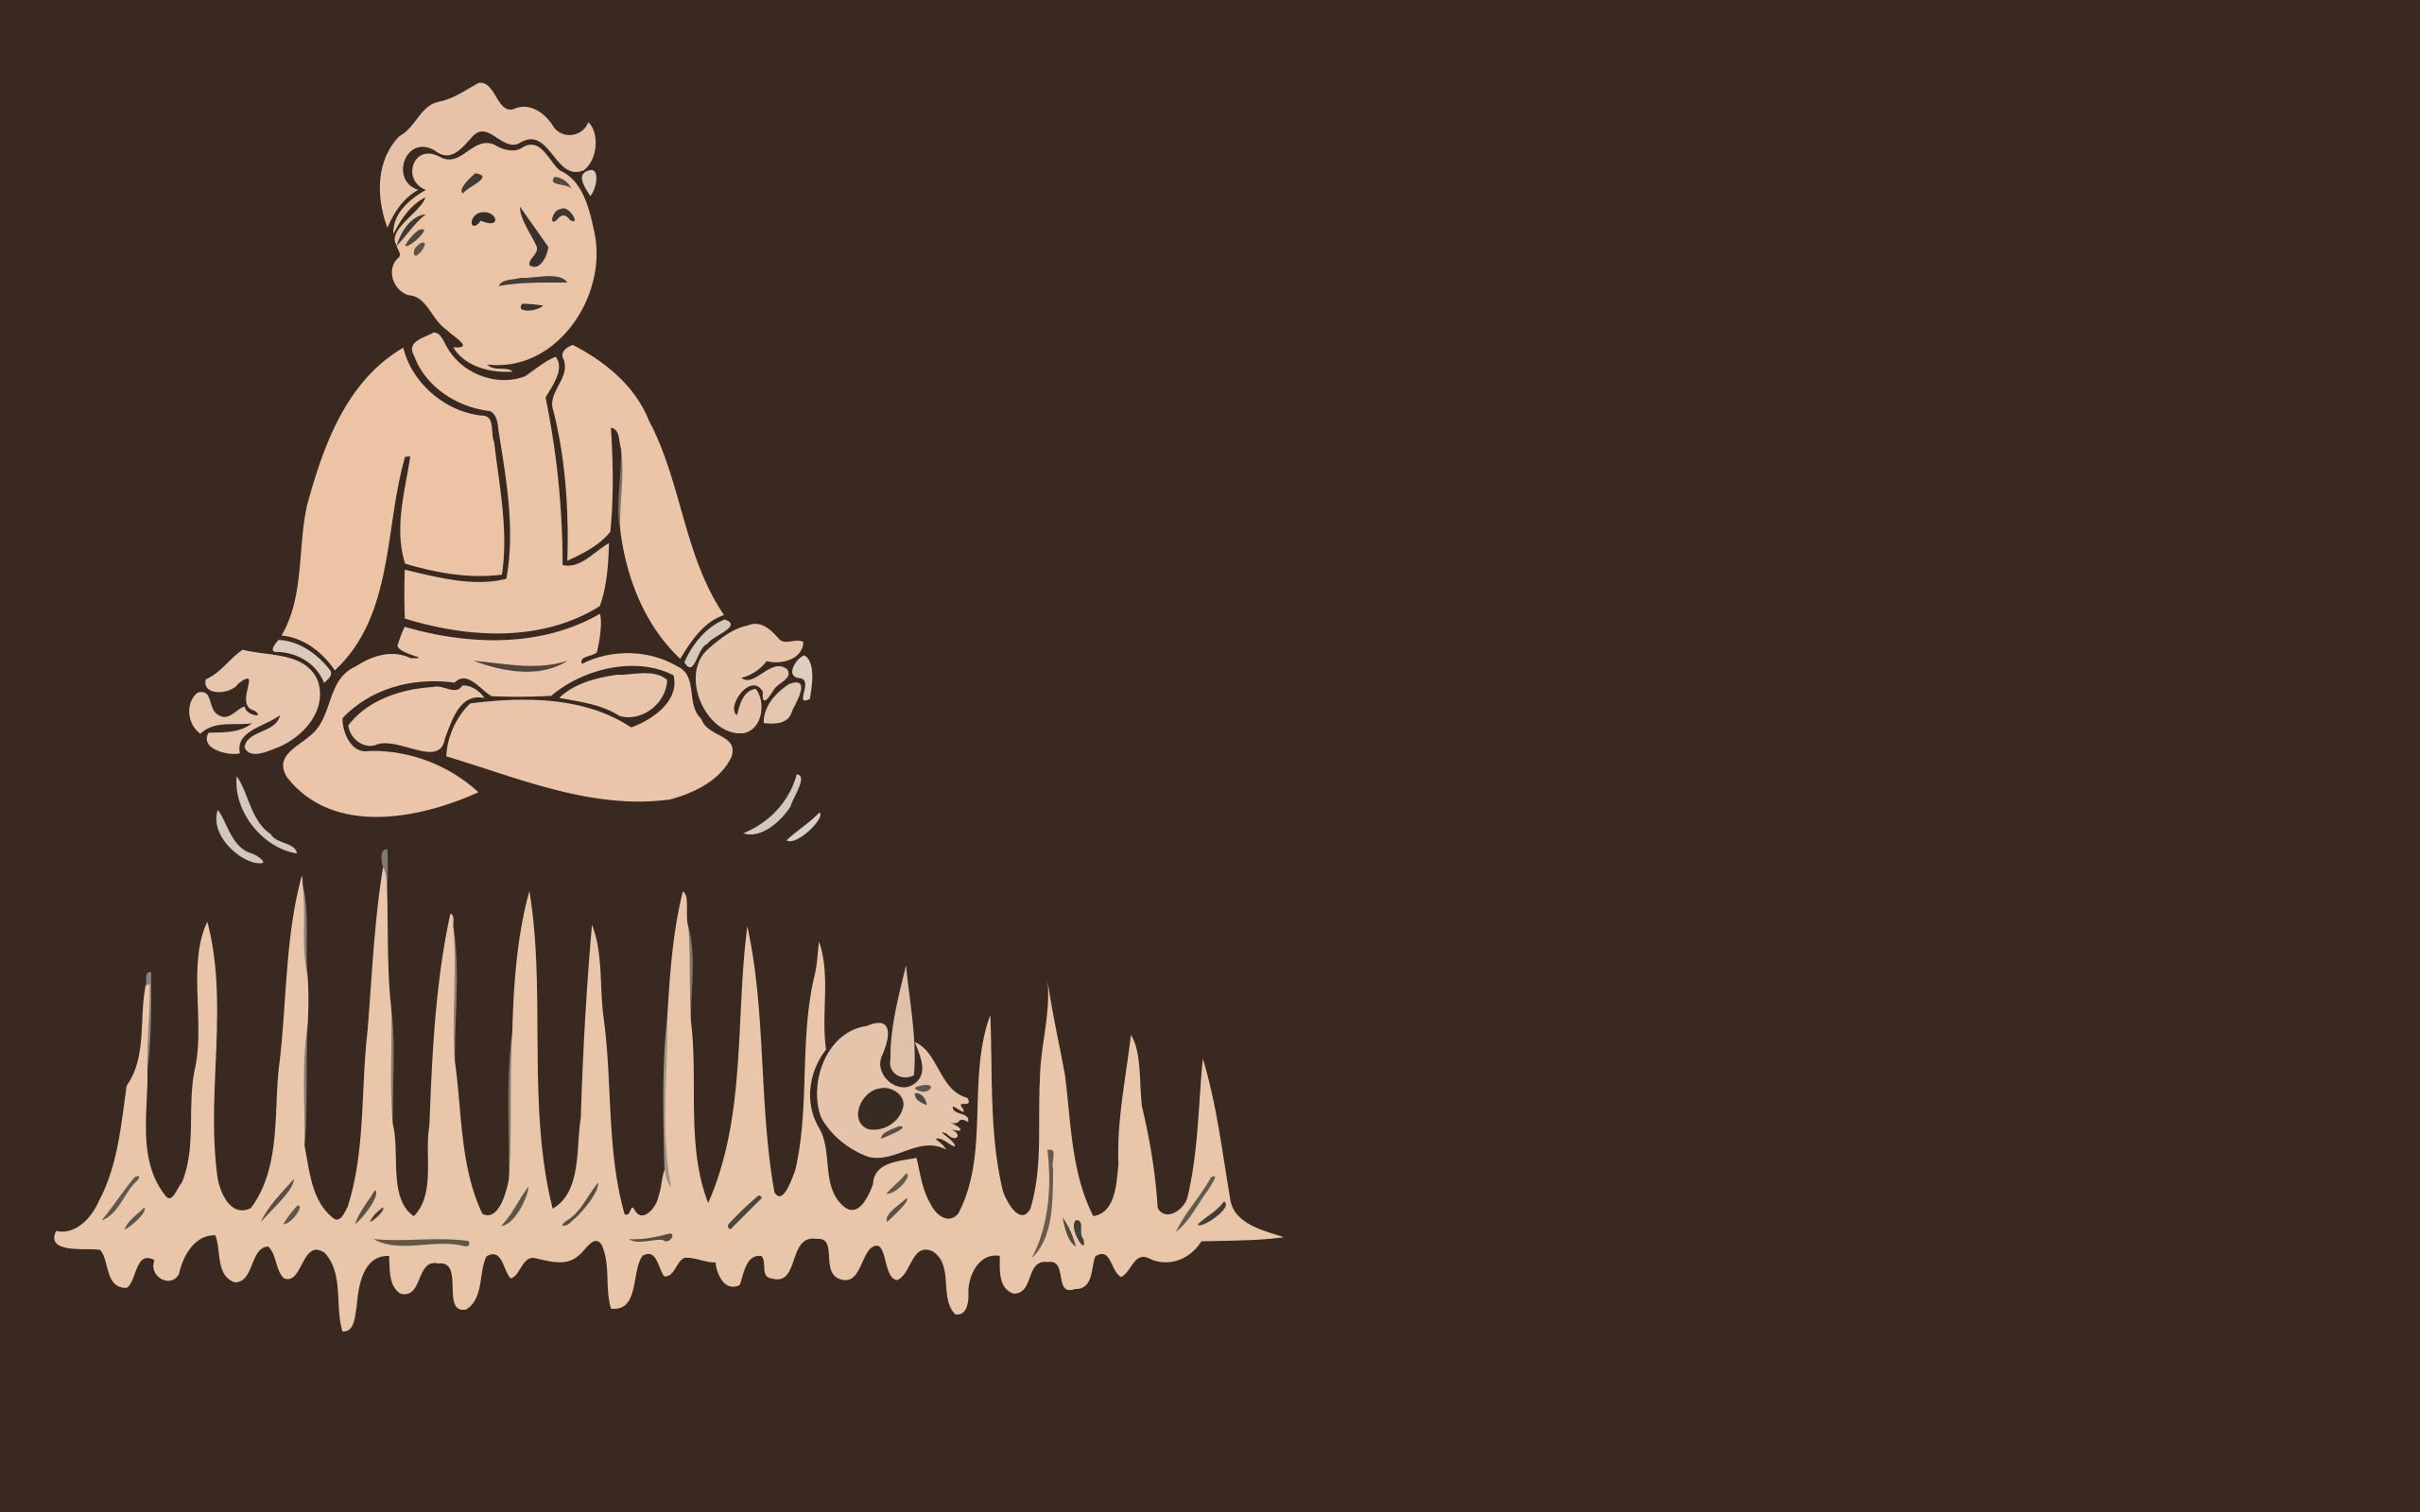 Video Games Minimalistic Fallout Brown Vault Boy Simplistic Simple